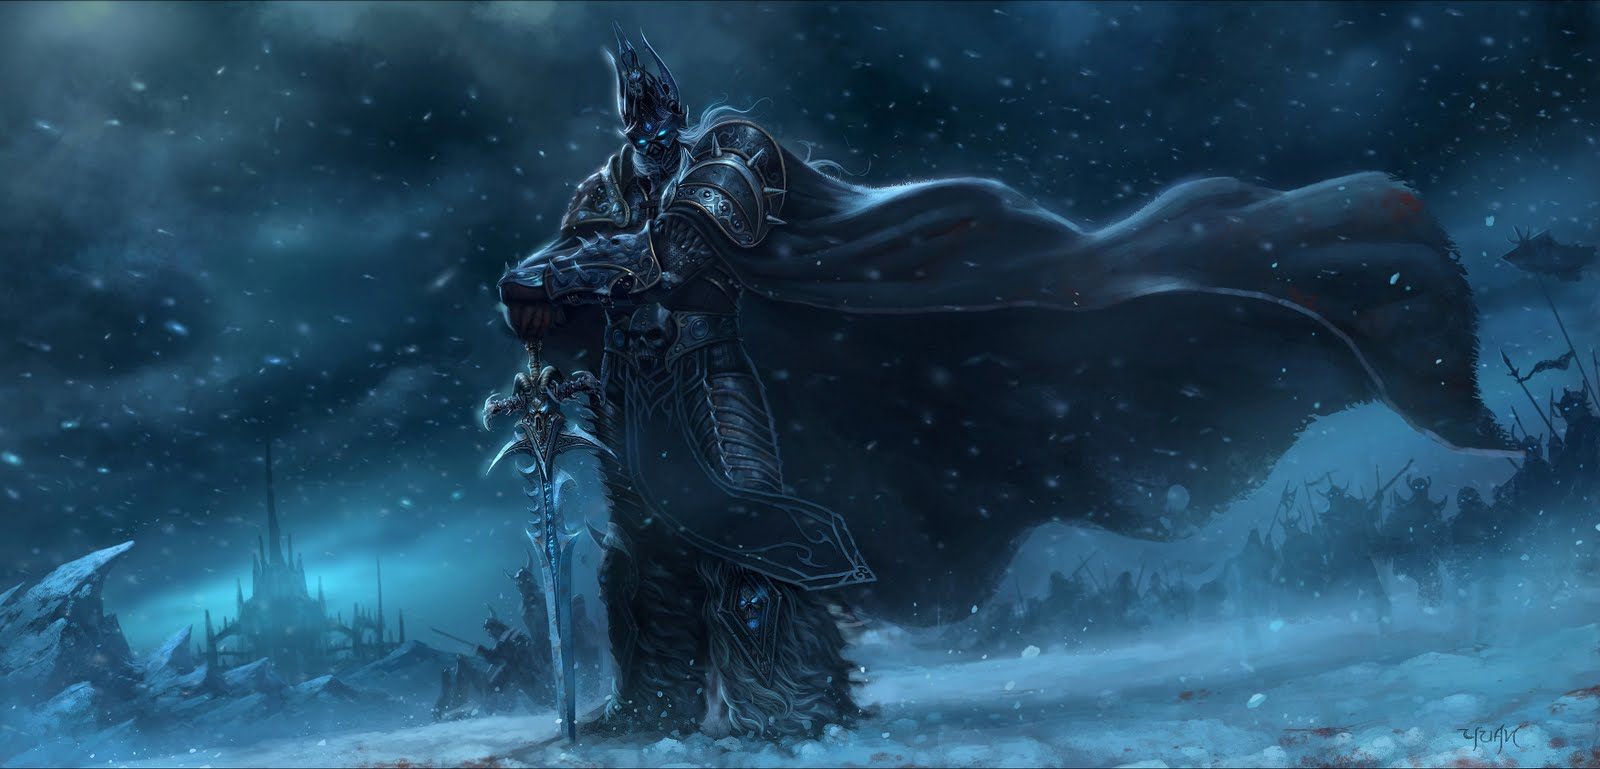 Fall Of The Lich King Wallpaper Trololo Blogg Lich King Wallpaper